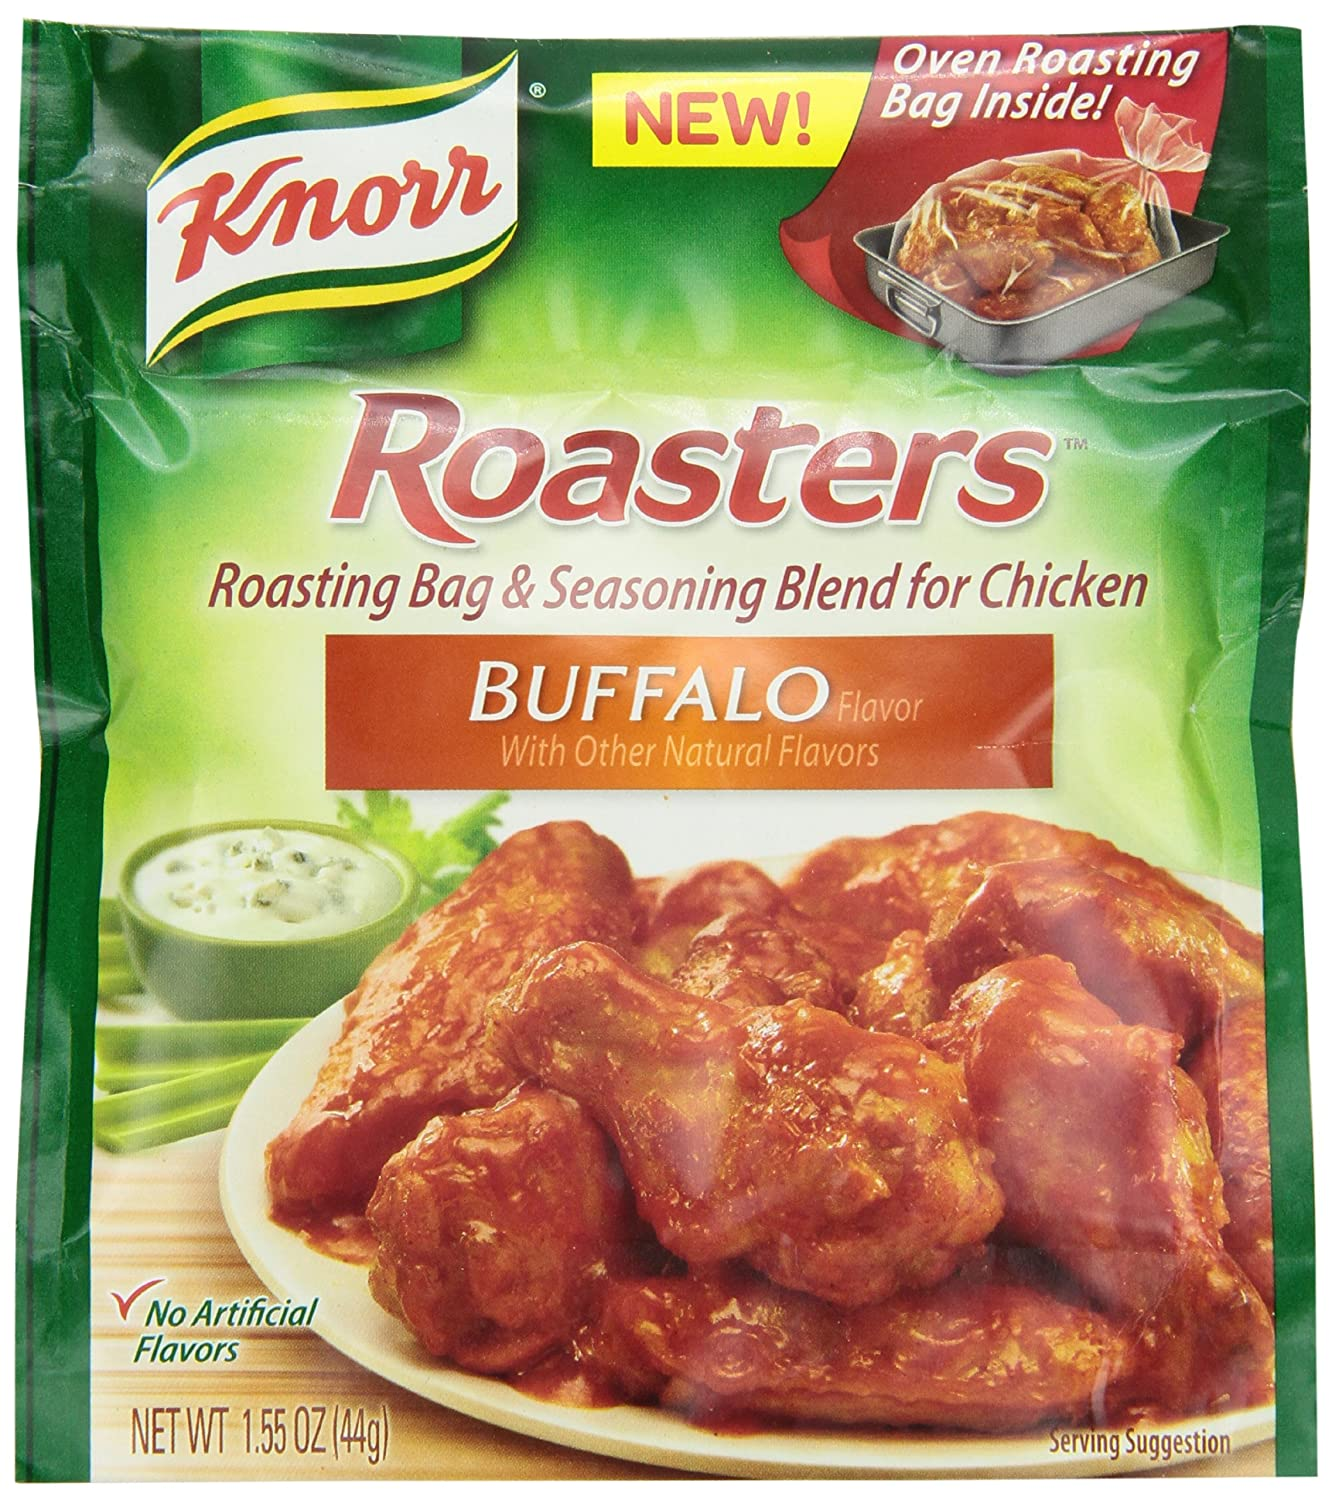 Amazon.com : Knorr Roasters Roasting Bag and Seasoning Blend for Chicken, Buffalo, 1.55 Ounce Packages (Pack of 12) : Meat Seasonings : Grocery & Gourmet ...